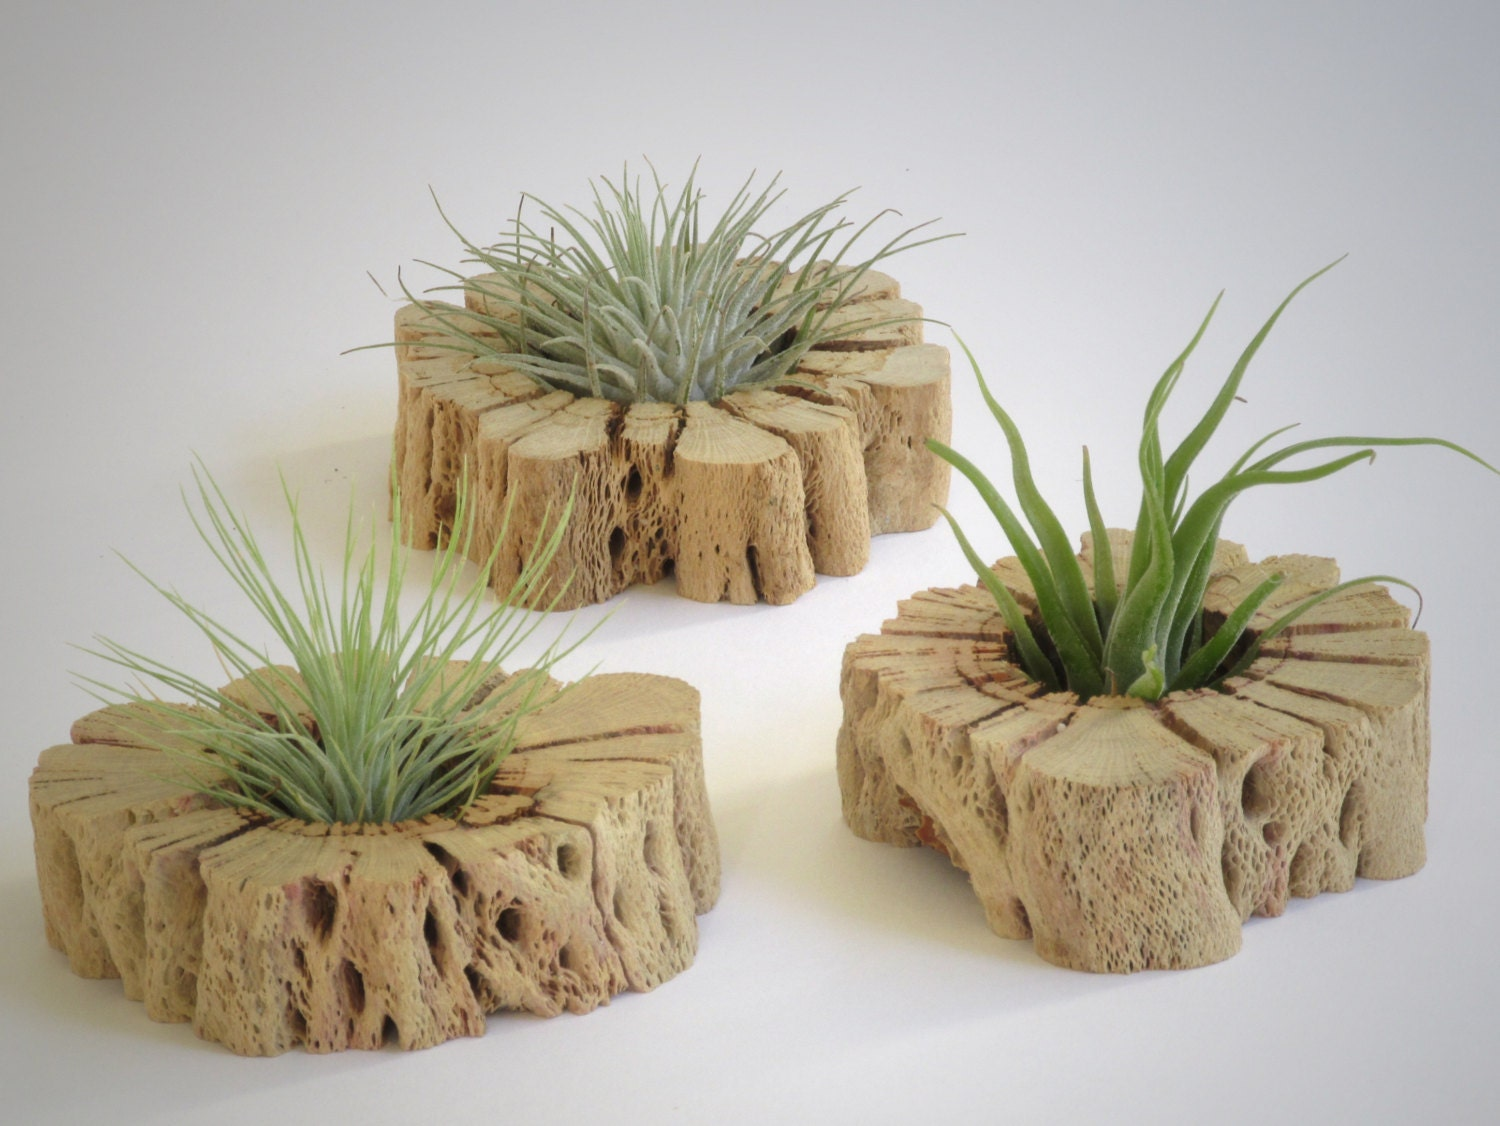 Air Plant Wall Art Unique Hand Cut Cactus Wood Slabs With